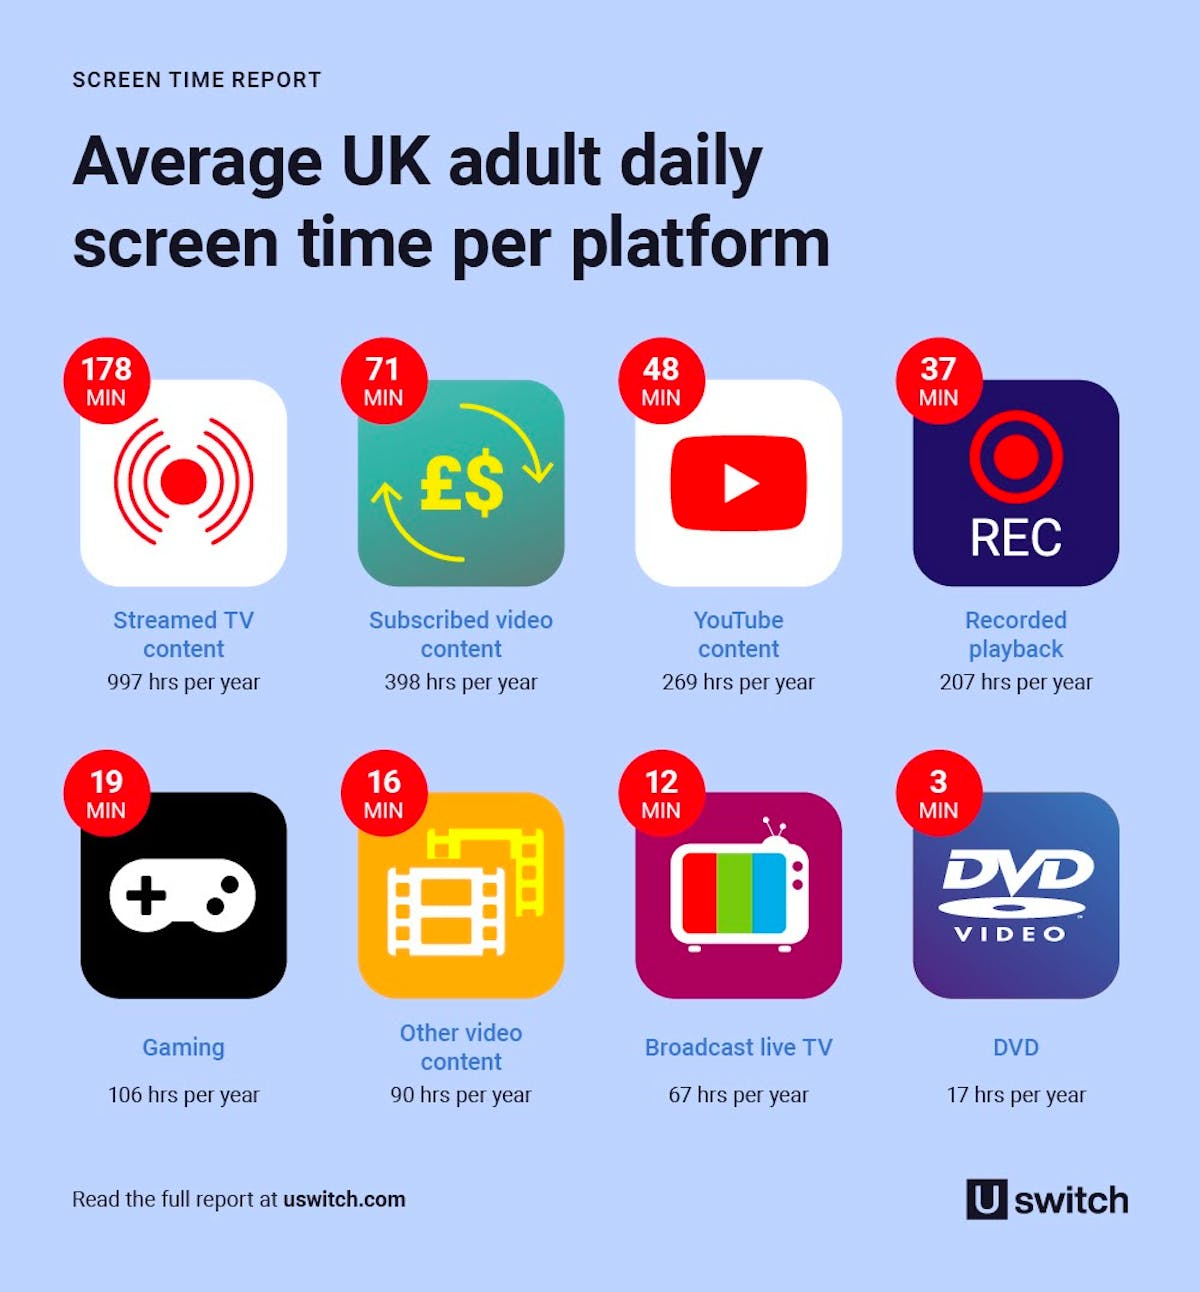 Screentime report - infographic showing the average adult daily screen time per platform